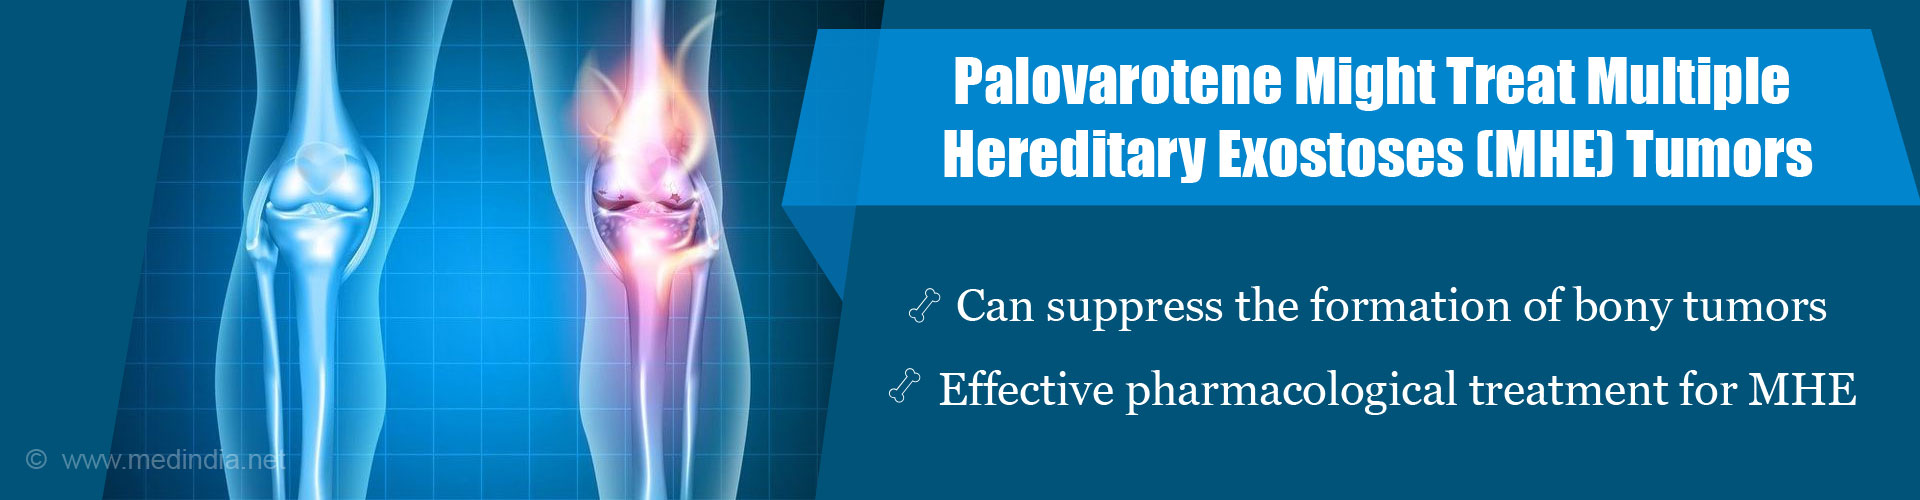 Palovarotene Drug, Shows Promise in Treating Rare Hereditary Disease